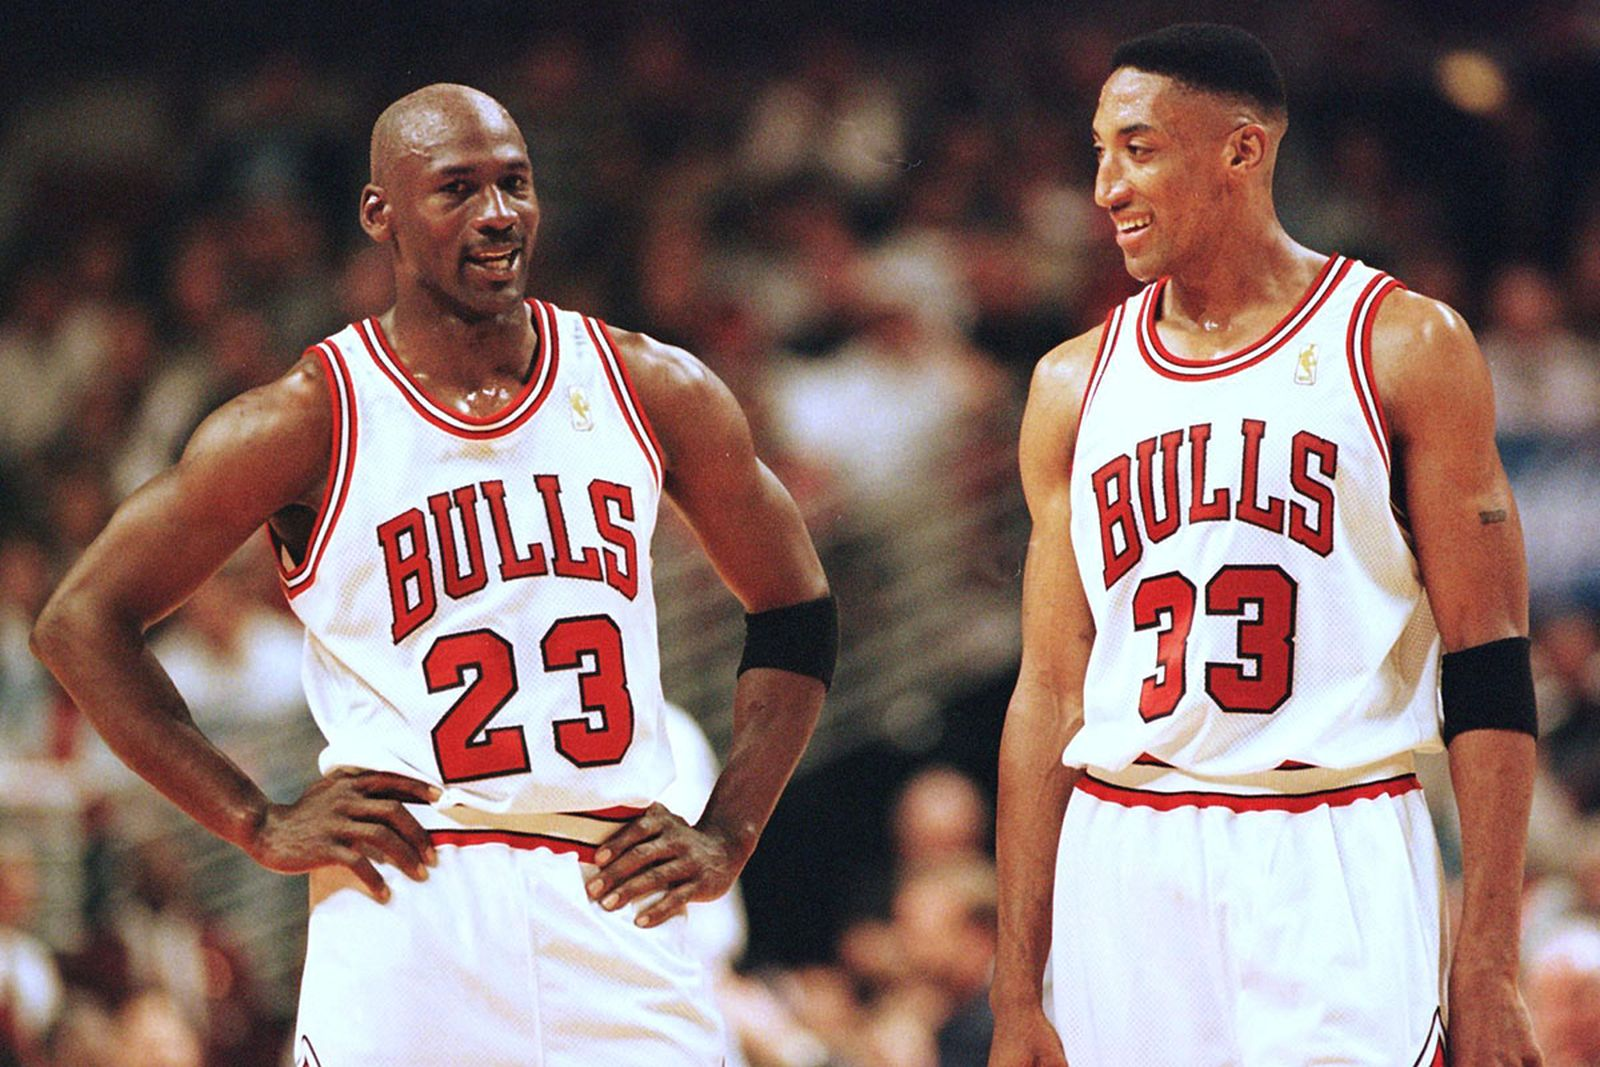 Michael Jordan (L) and Scottie Pippen (R) of the Chicago Bulls talk during the final minutes of their game